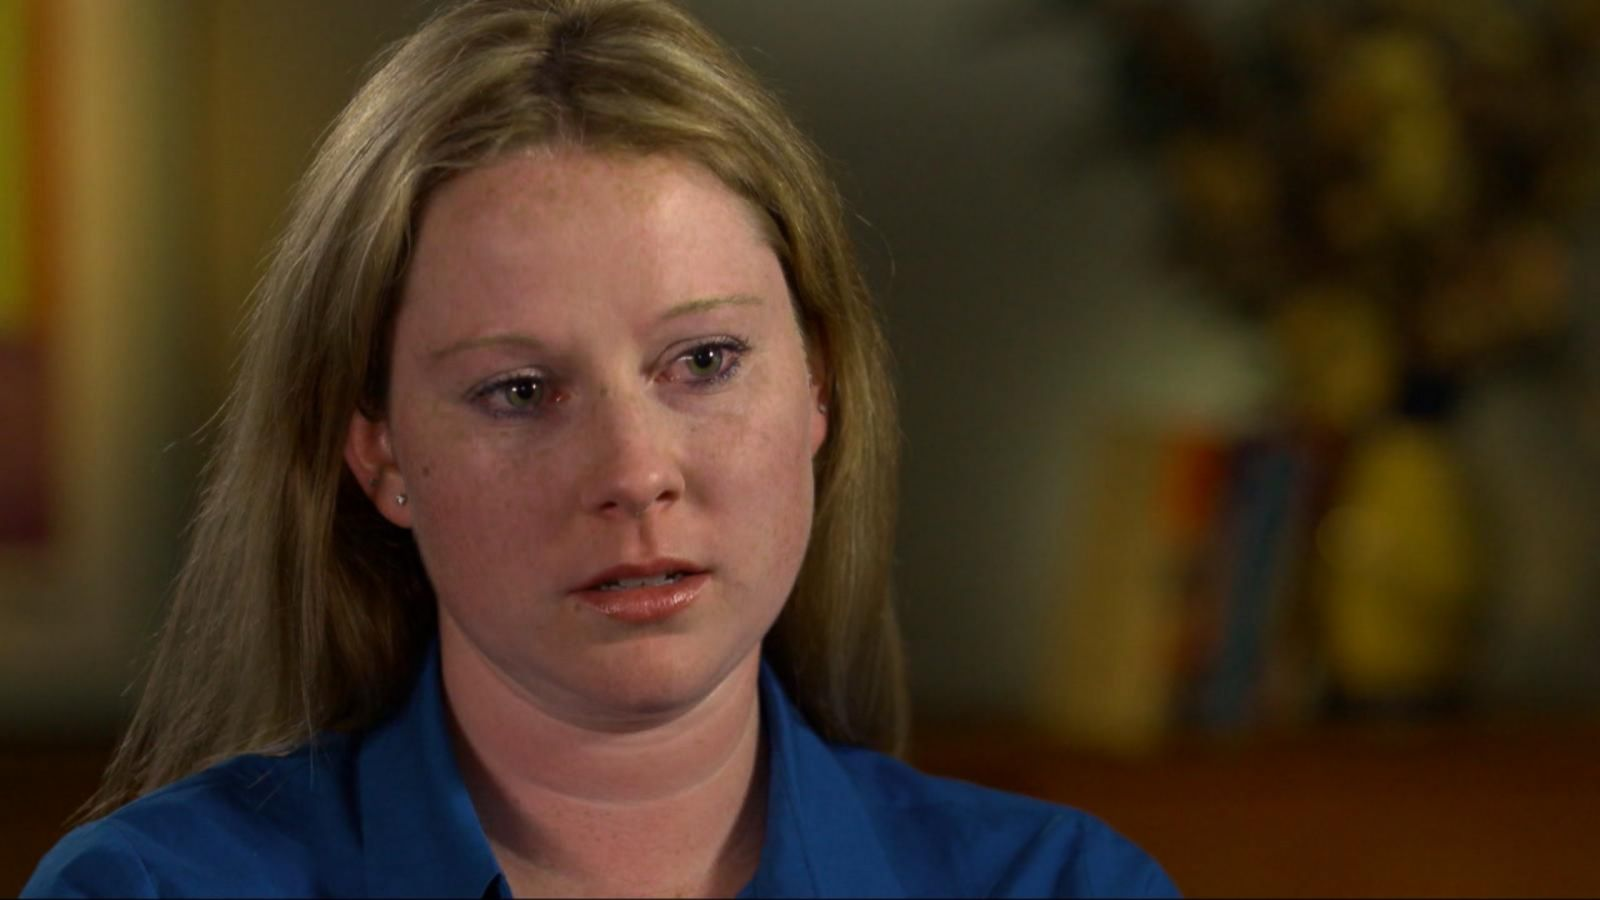 Former Jehovah's Witness Accuses Church of Hiding Child